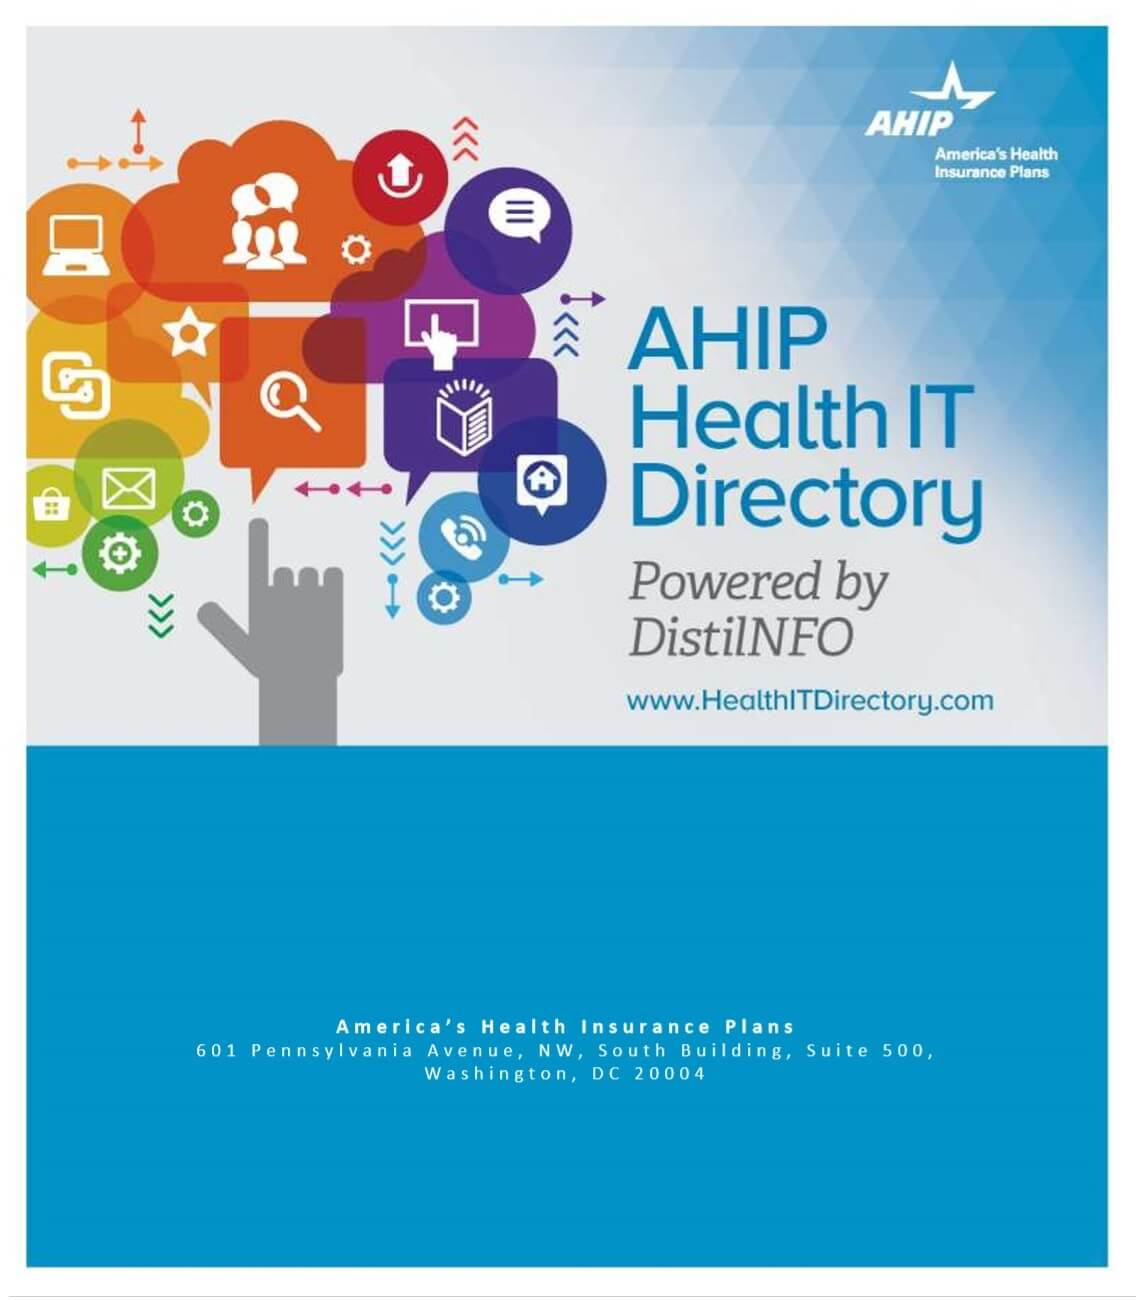 Ahip health it directory powered by distilnfo health it directory 1betcityfo Images